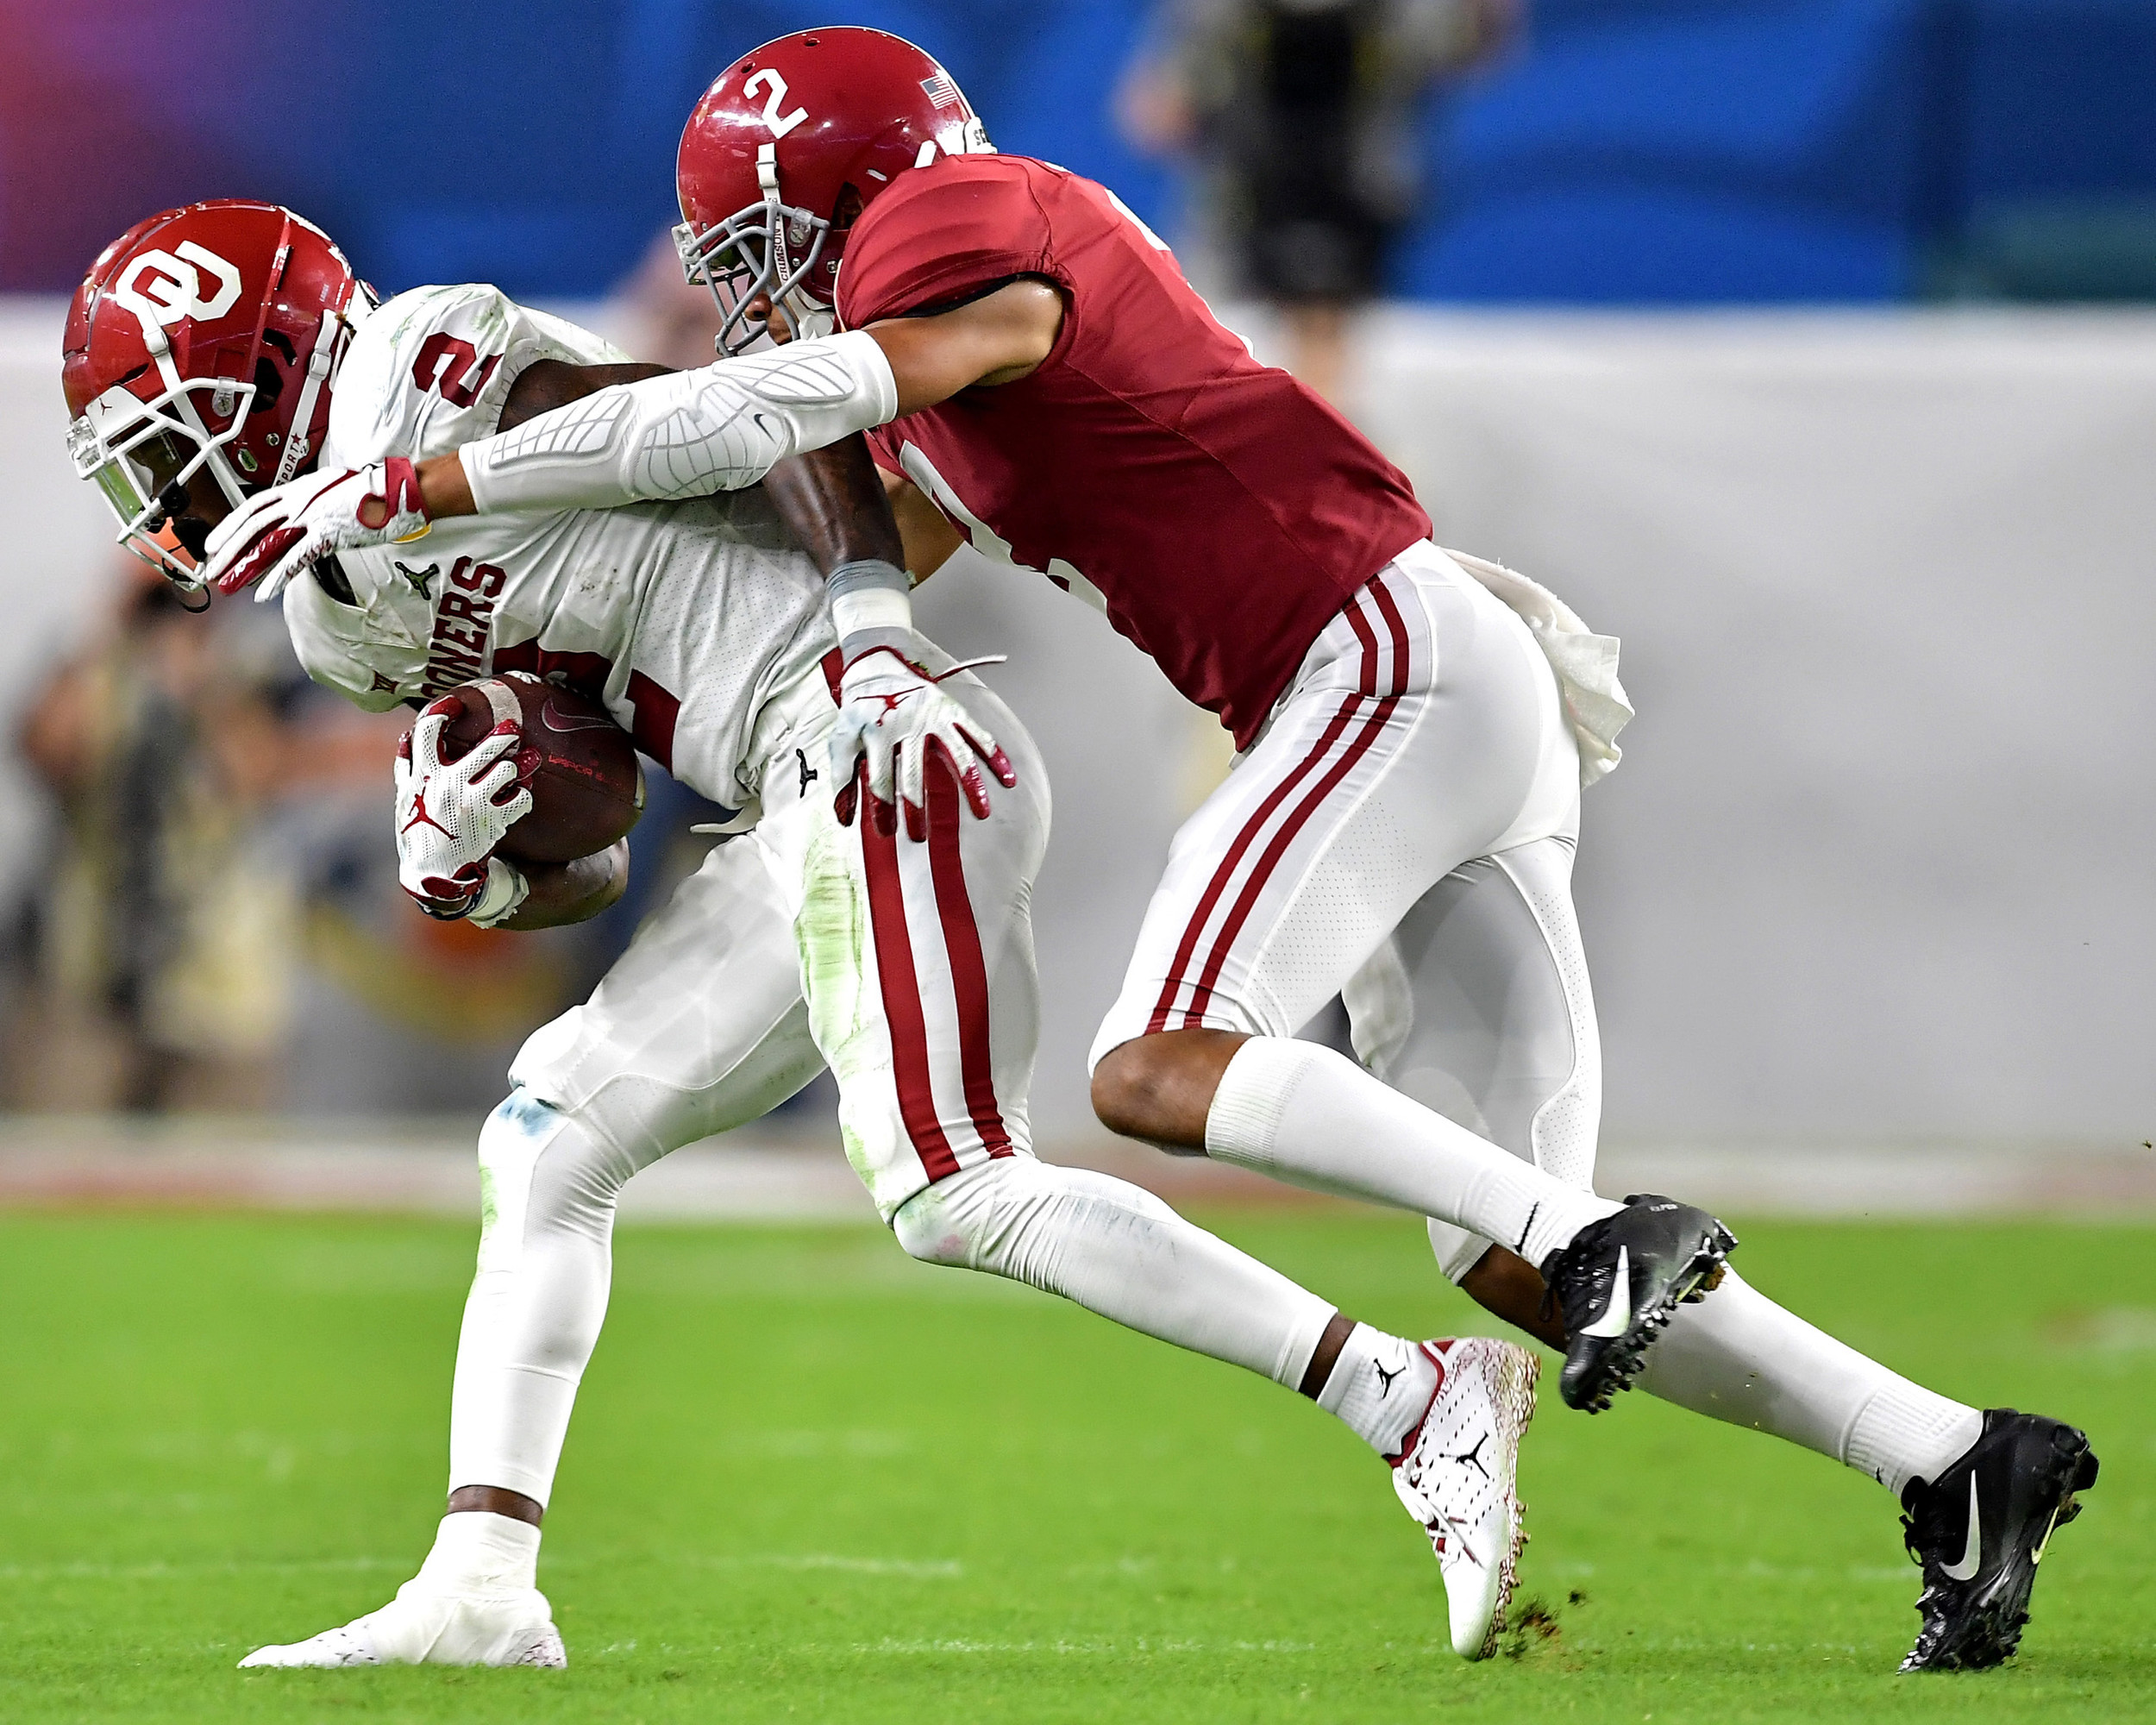 Oklahoma Sooners wide receiver CeeDee Lamb (2) is tackled by Alabama Crimson Tide defensive back Patrick Surtain II (2) during the second half of the Capital One Orange Bowl at Hard Rock Stadium in Miami Gardens, Fla., Saturday, Dec. 29, 2018. Alabama wins 45-34. (Photo by Lee Walls)